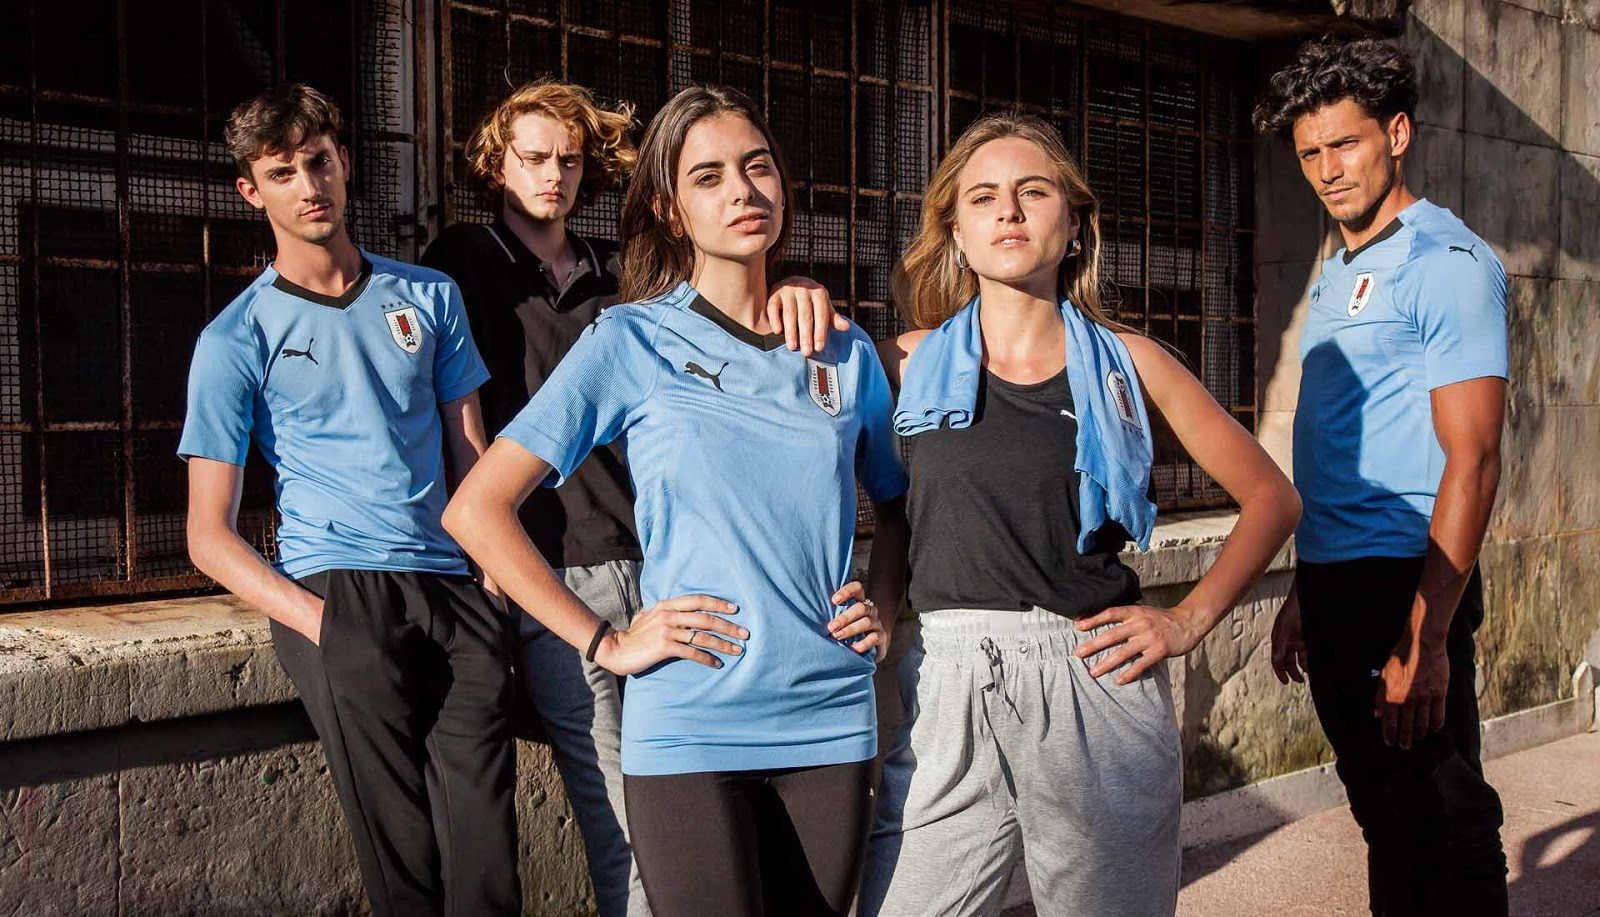 Uruguay World Cup 2018 home jersey